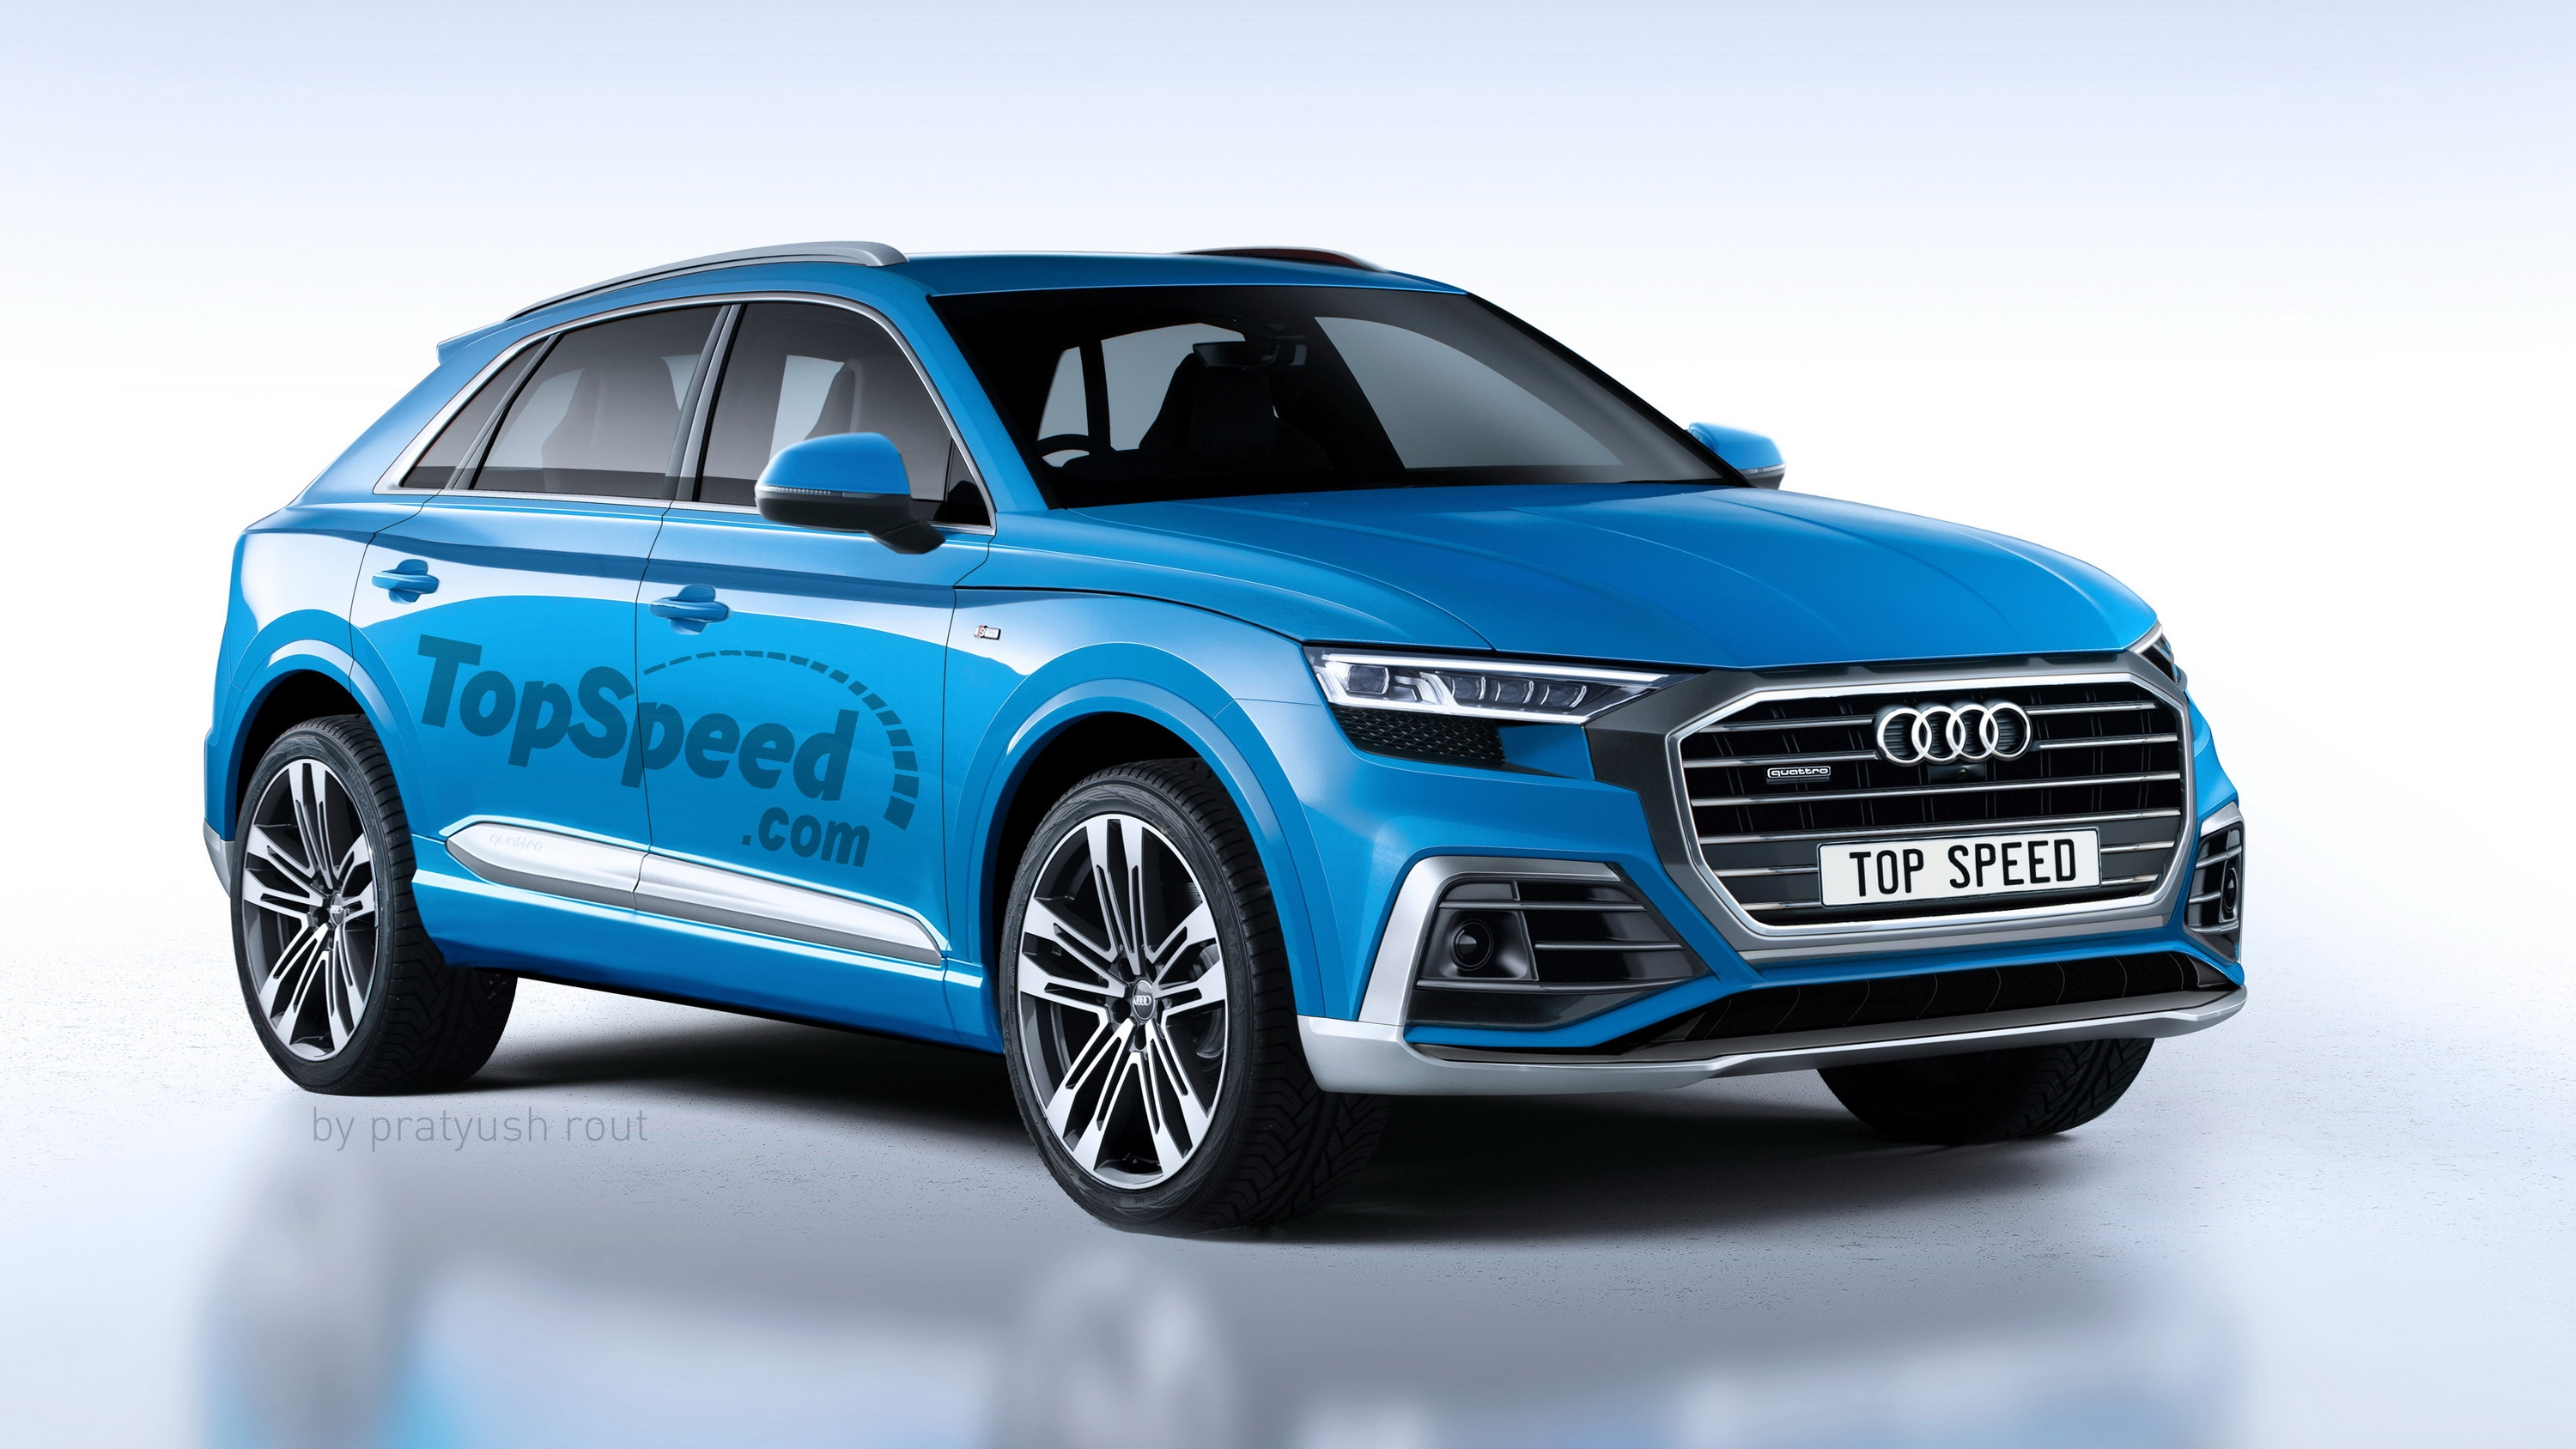 Audi s All New Q4 And Q8 SUVs To Be Joined By An All New Q1 That